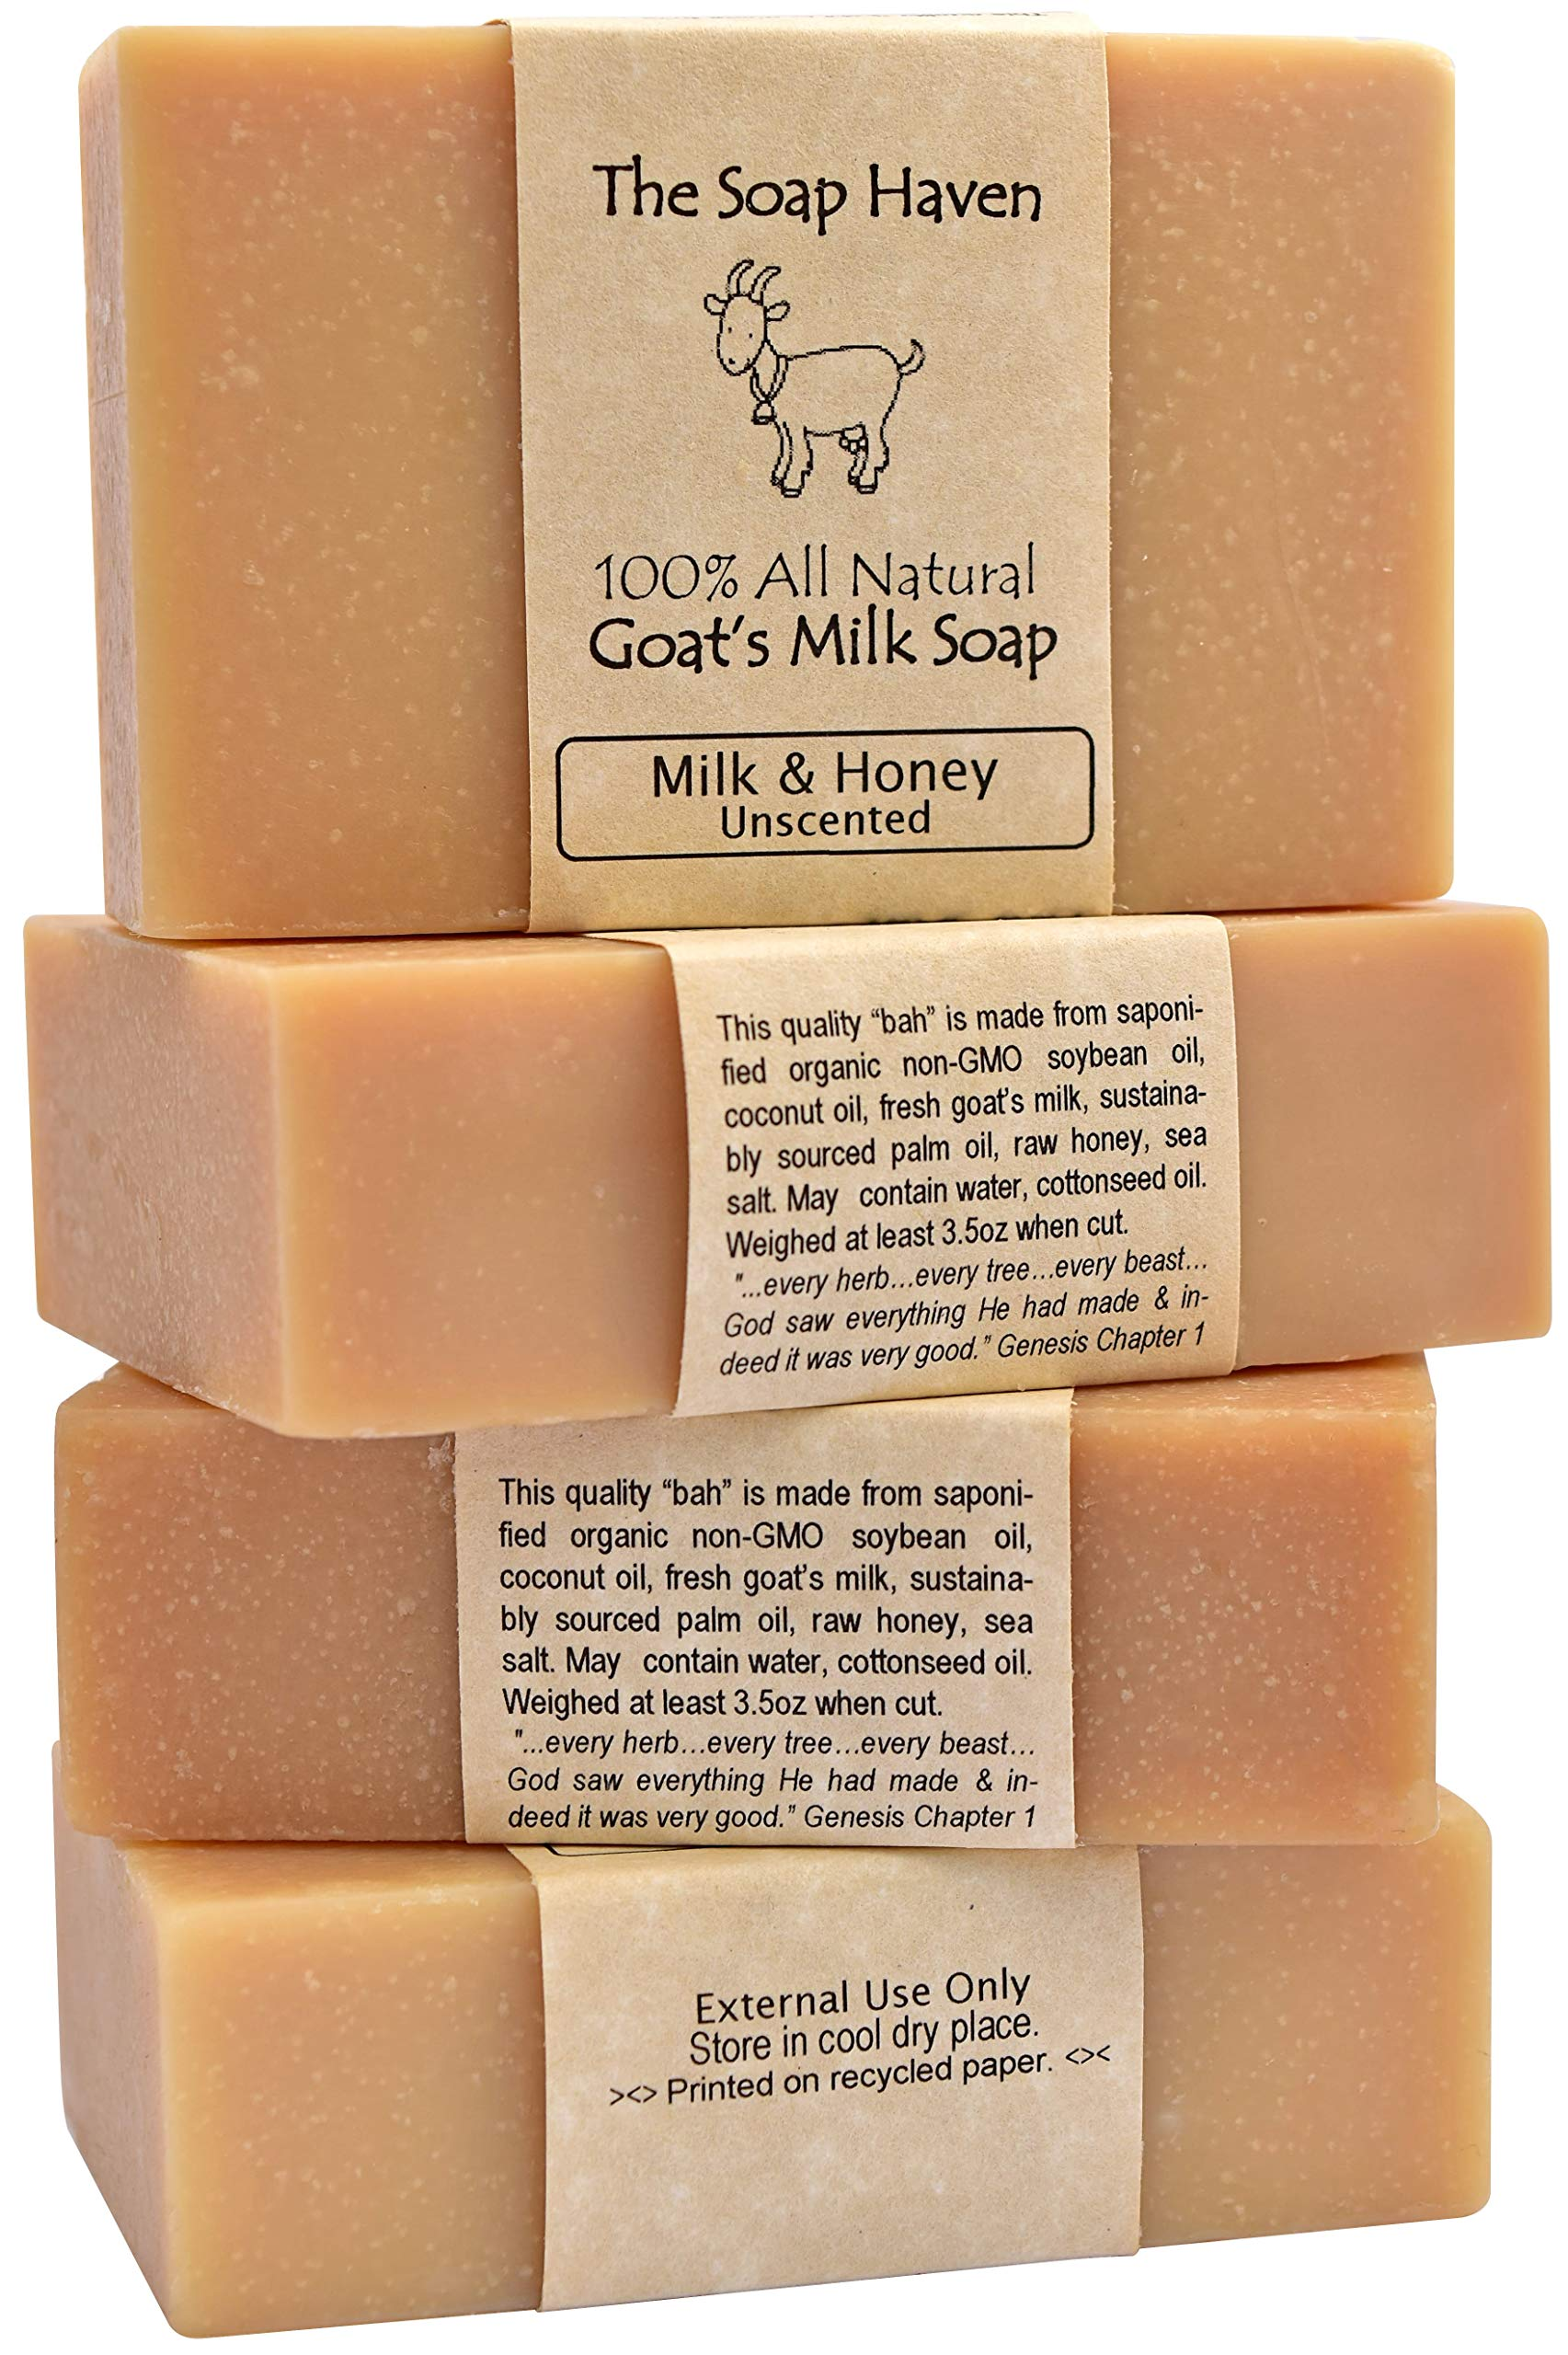 4 Goat Milk Soap Bars with Honey - Handmade in USA. All Natural Soap - Unscented, Fragrance Free, Fresh Goats Milk. Wonderful for Eczema, Psoriasis, Babies, and Sensitive Skin. SLS, Paraben, GMO-Free.